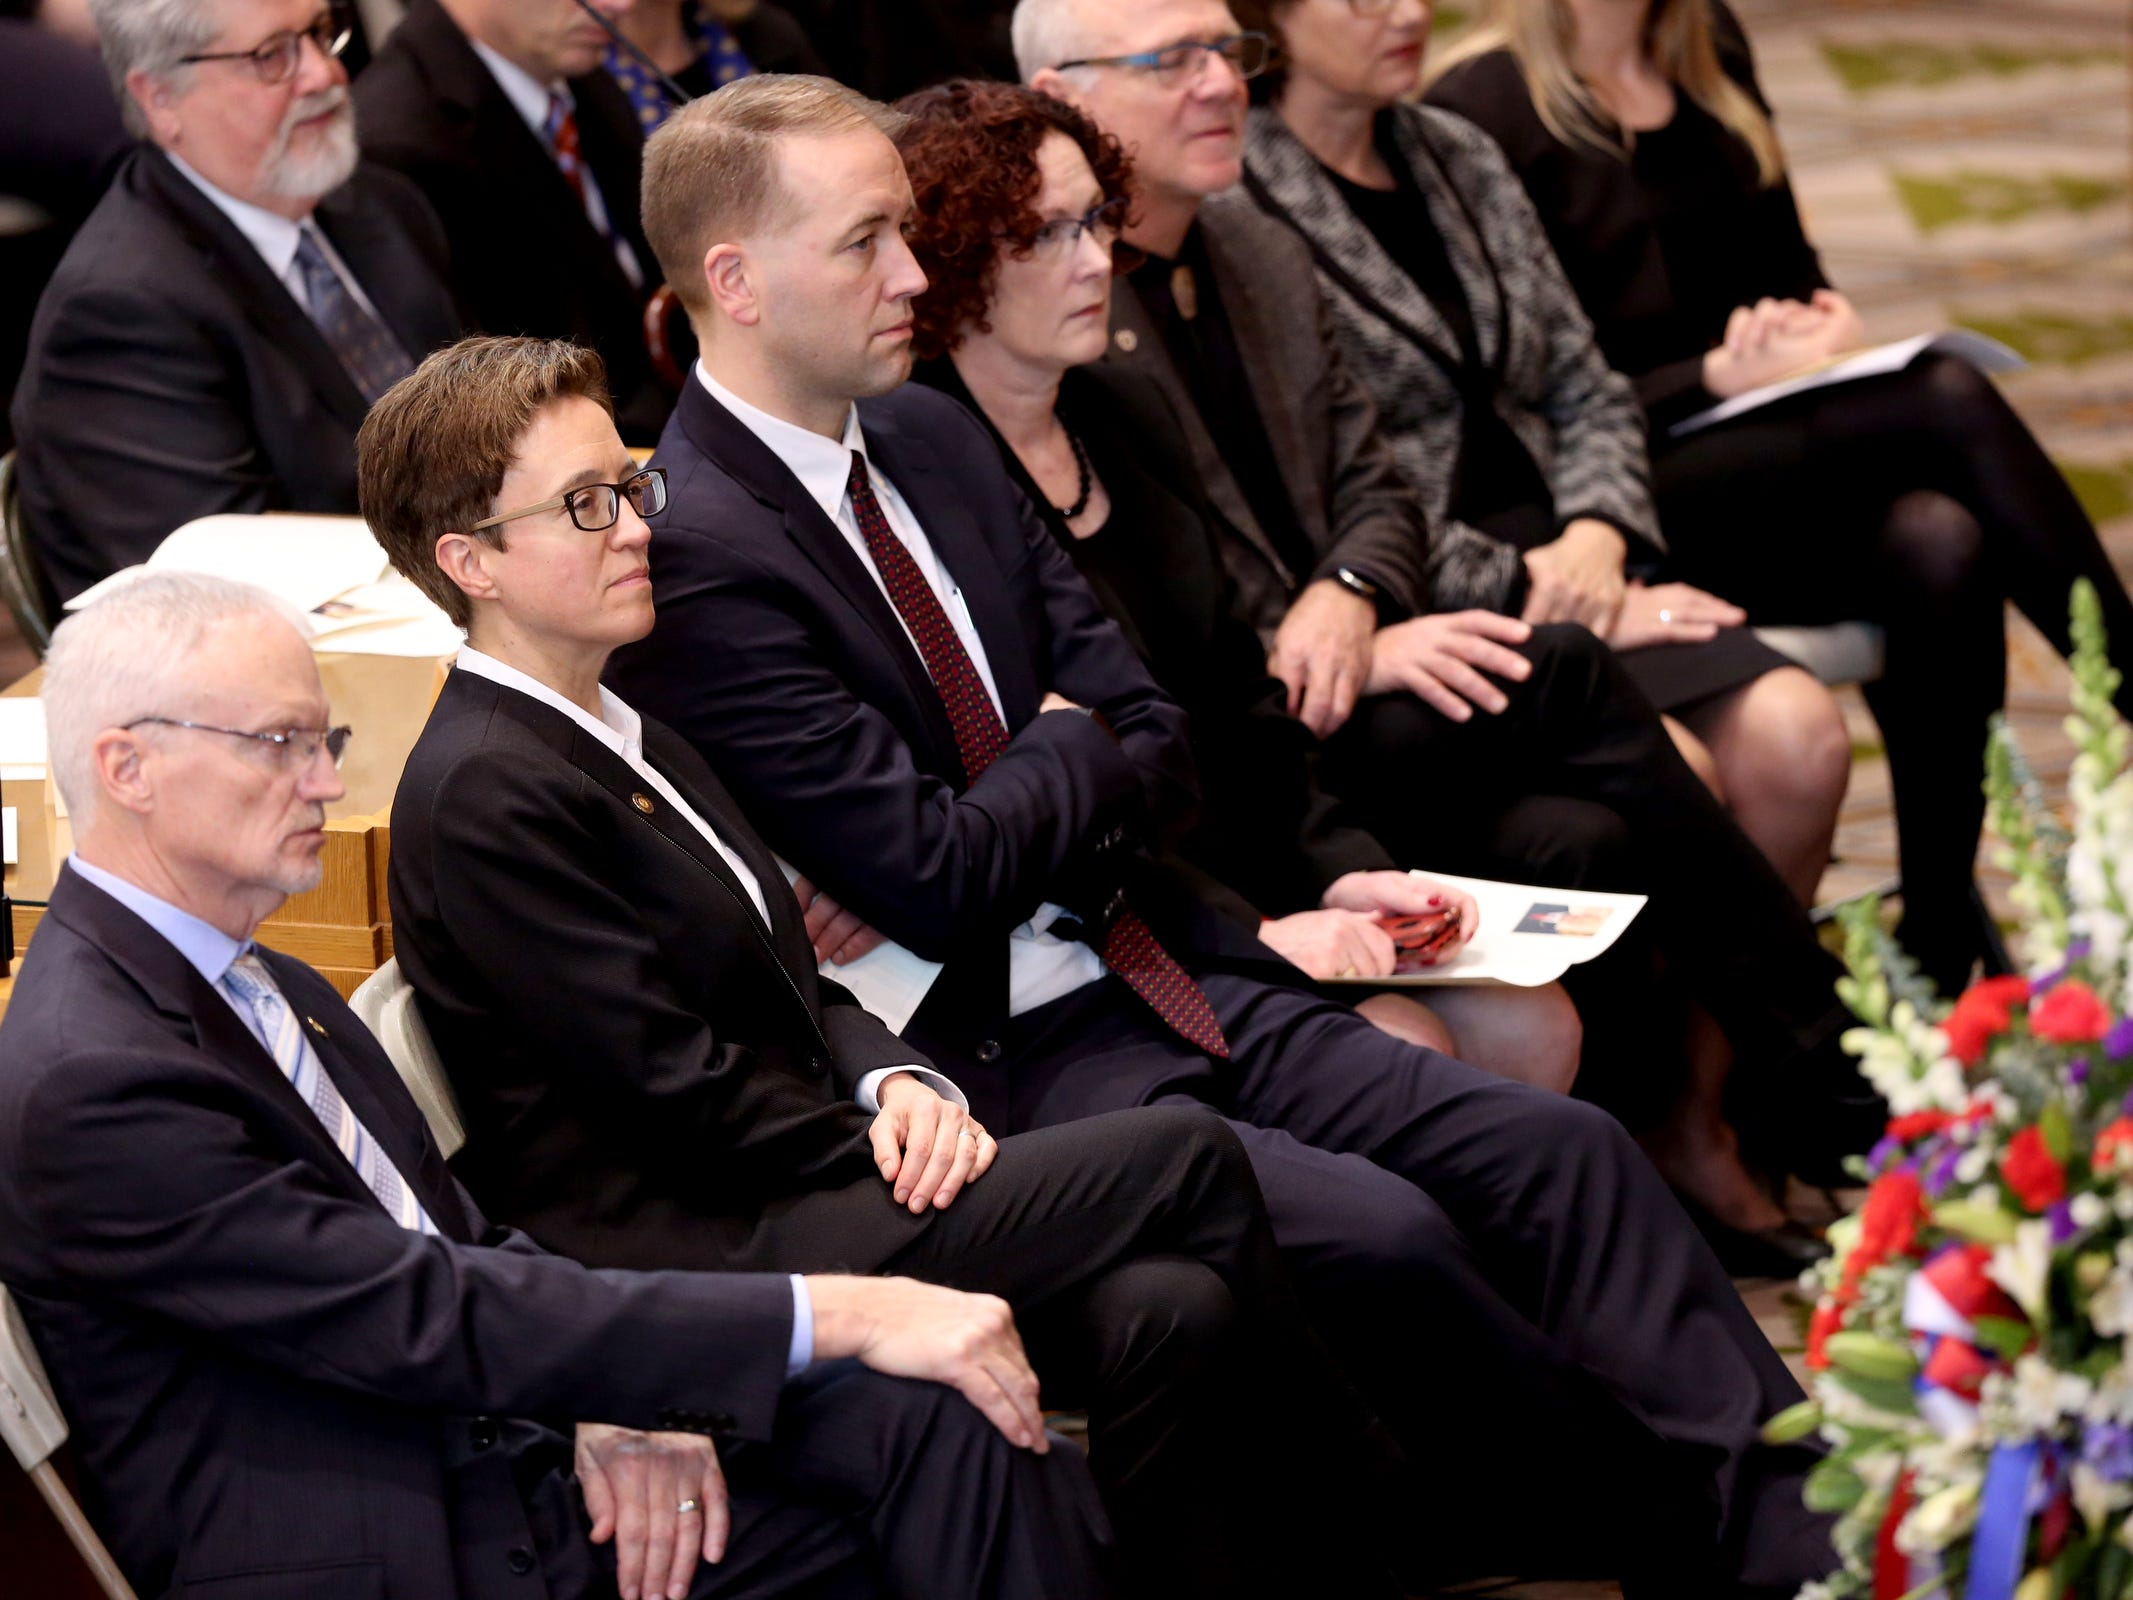 Hundreds attend the state funeral for Secretary of State Dennis Richardson at the Oregon State Capitol in Salem on Wednesday, March 6, 2019.